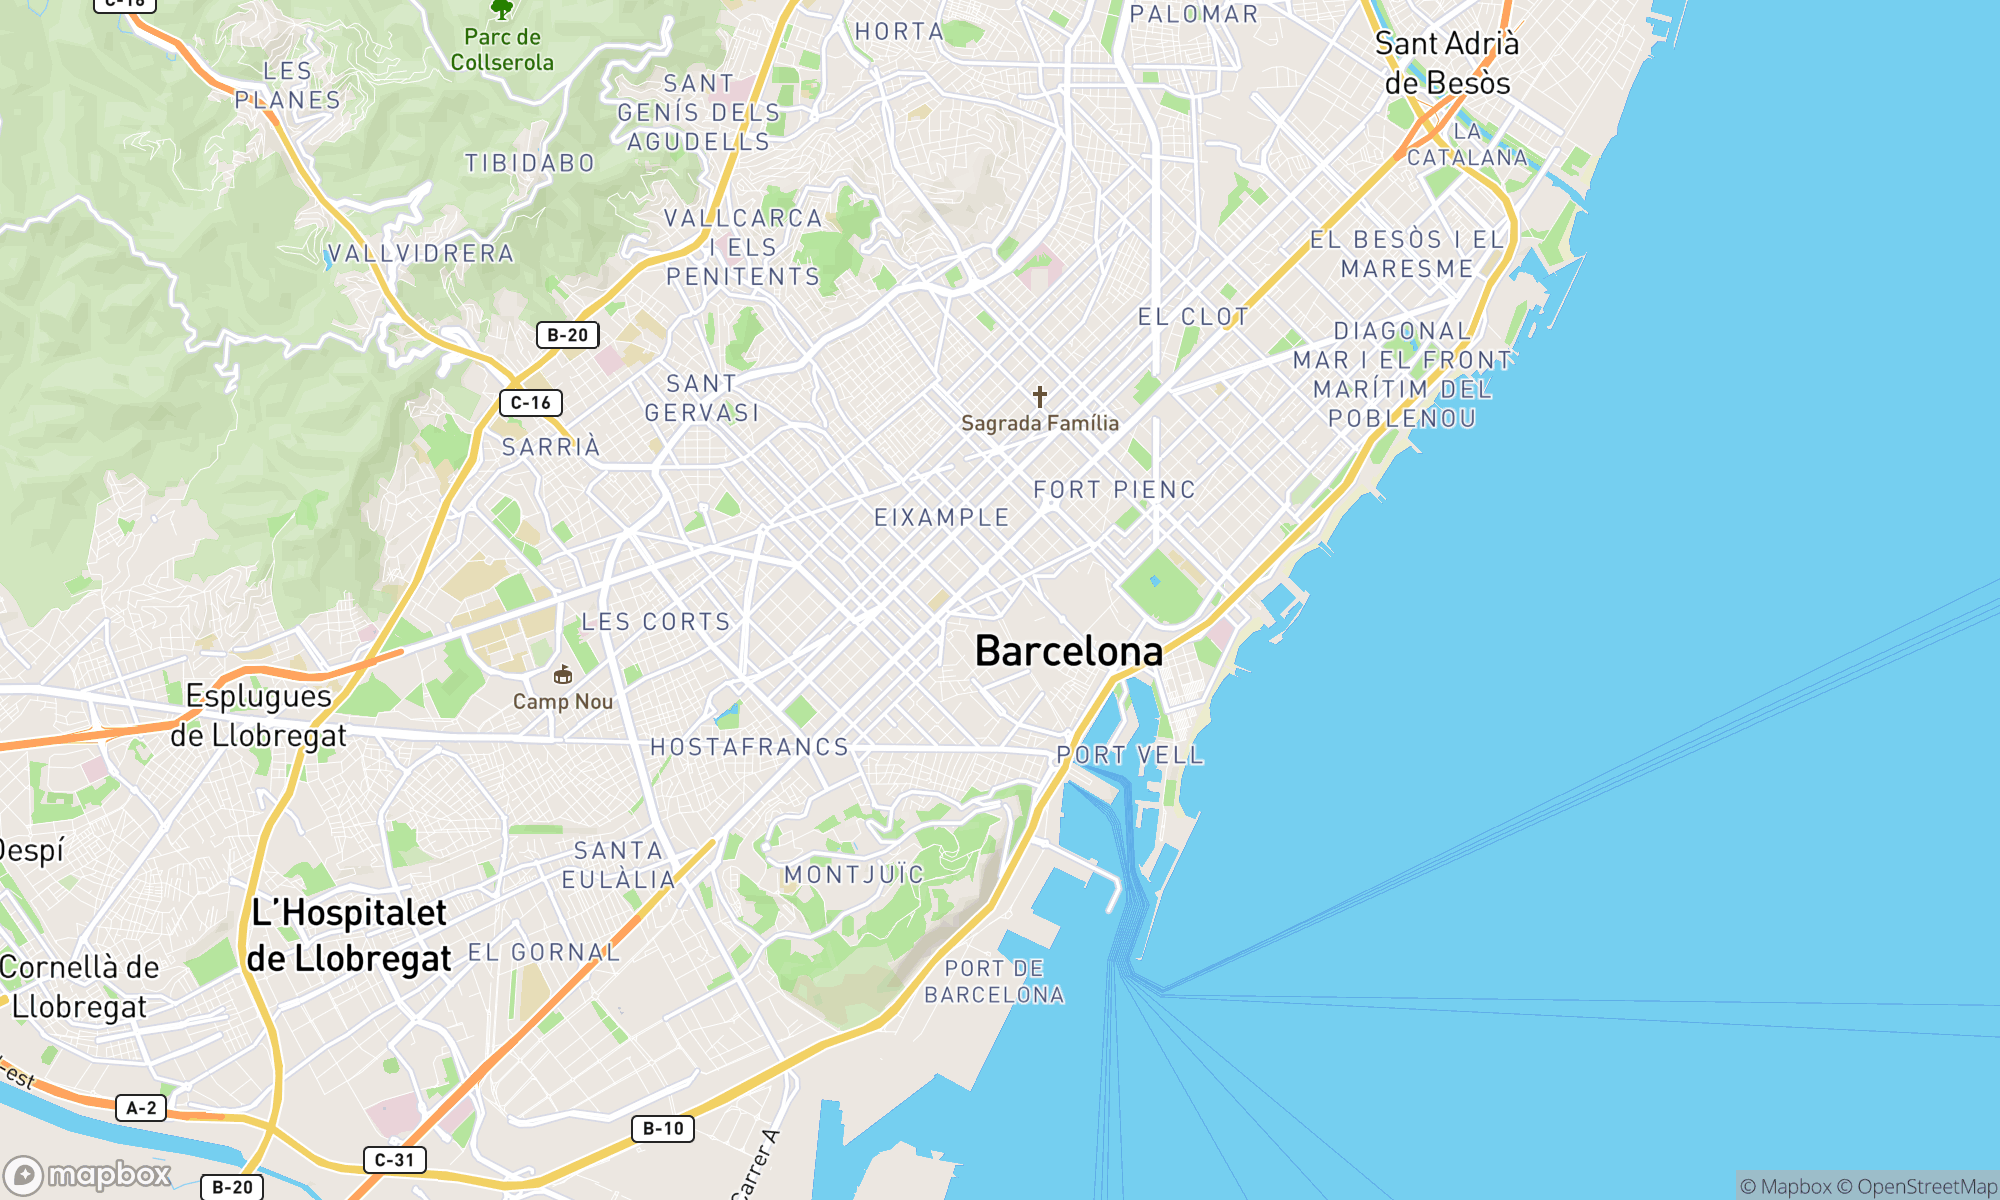 Map of Barcelona area